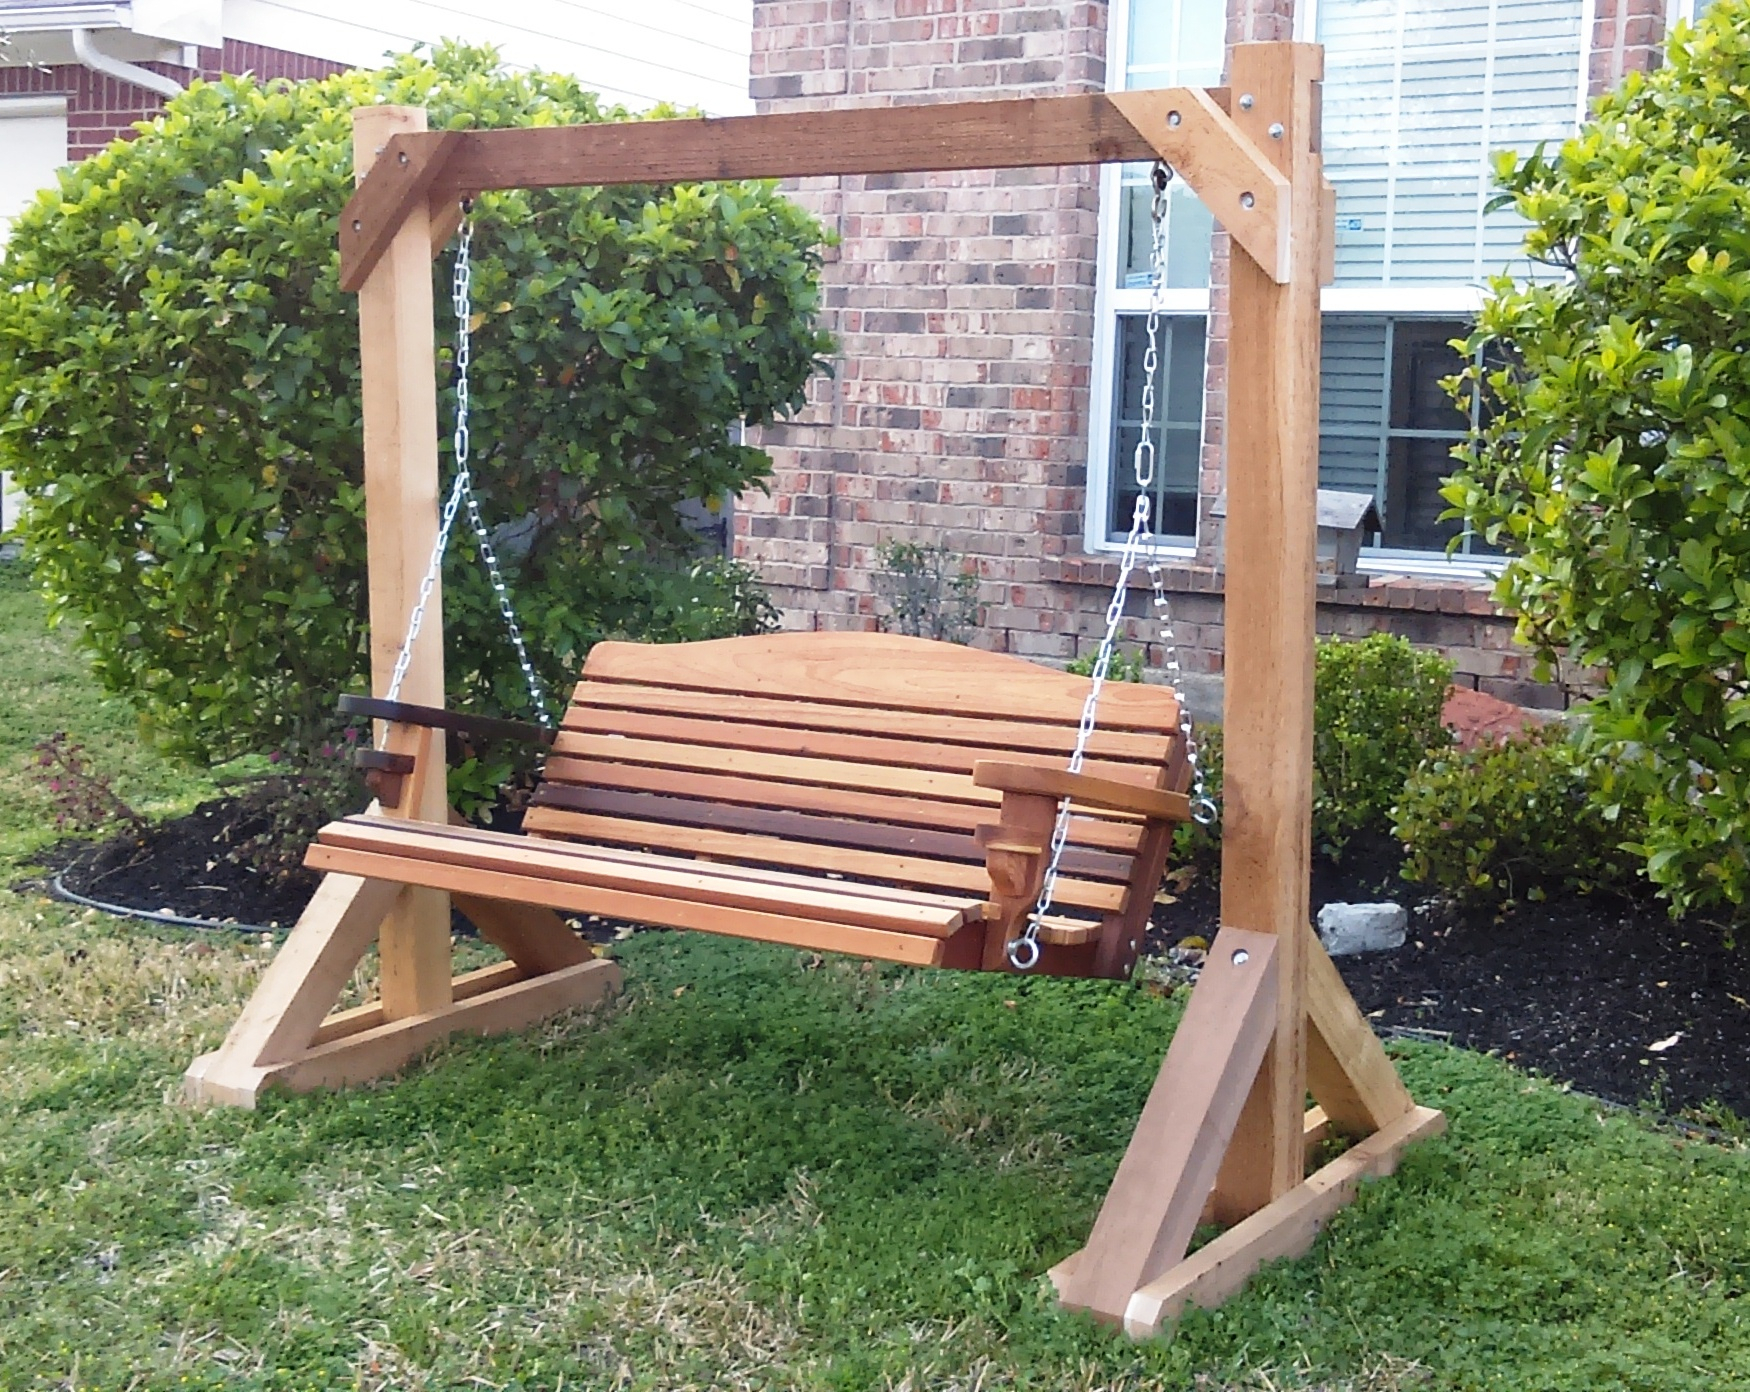 Inspirations: Enjoy Your All Day With Cozy Wooden Porch Regarding Porch Swings With Stand (View 20 of 25)